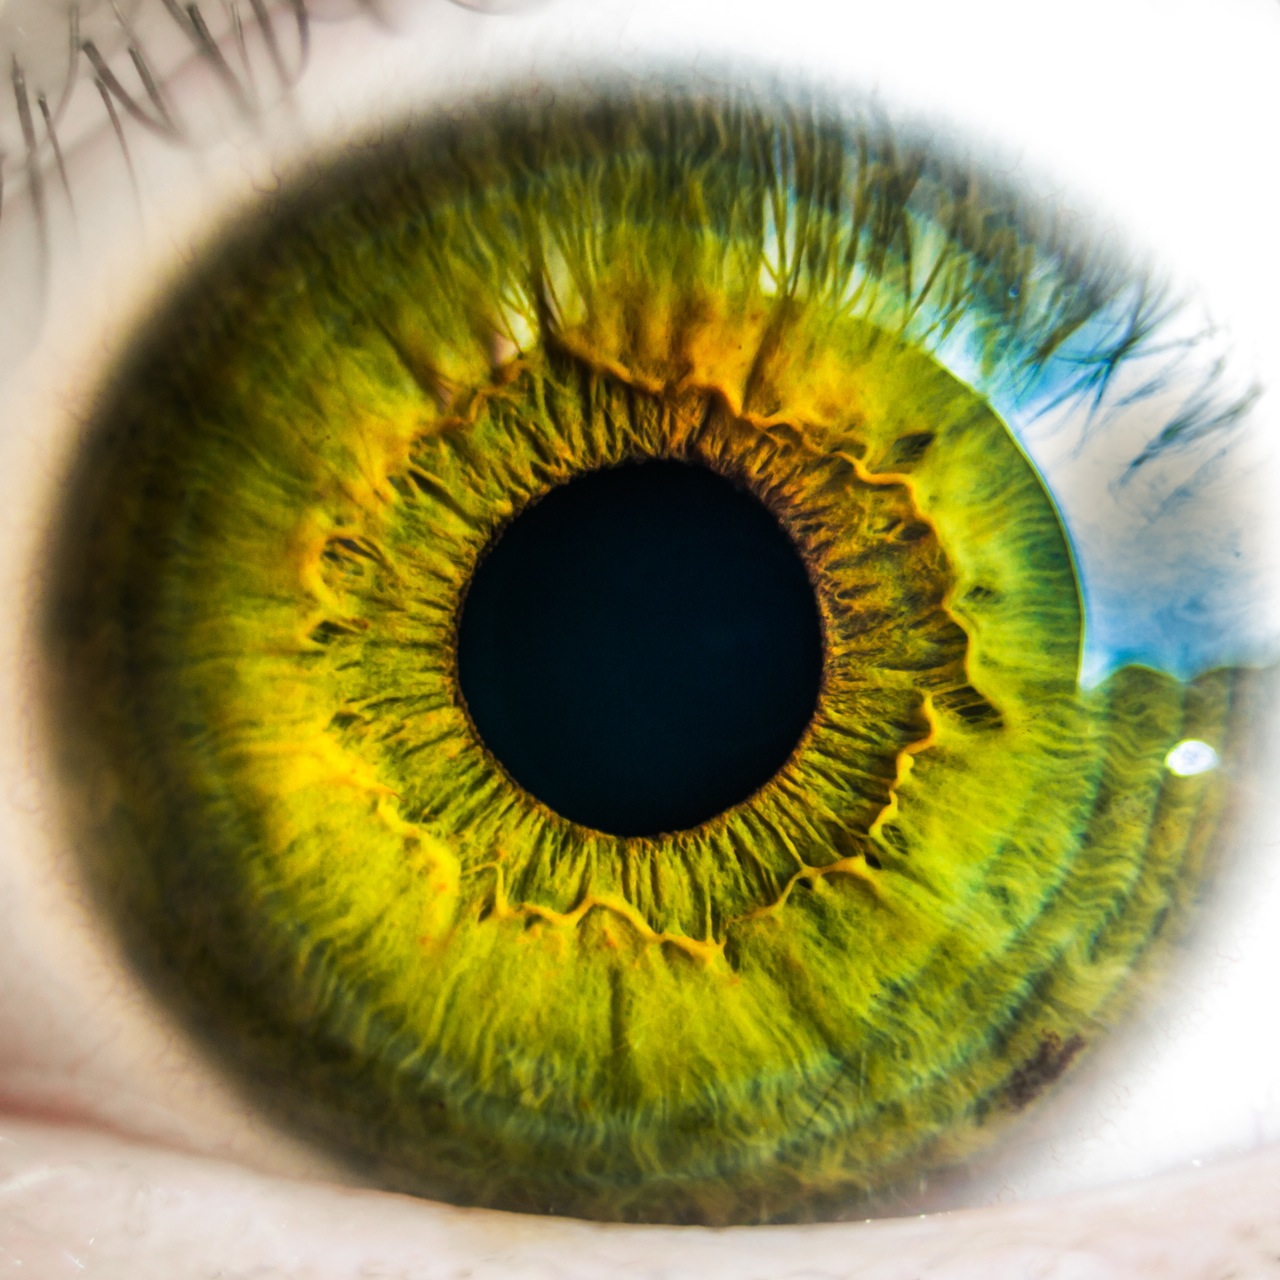 How we can tell that eyes are watching us